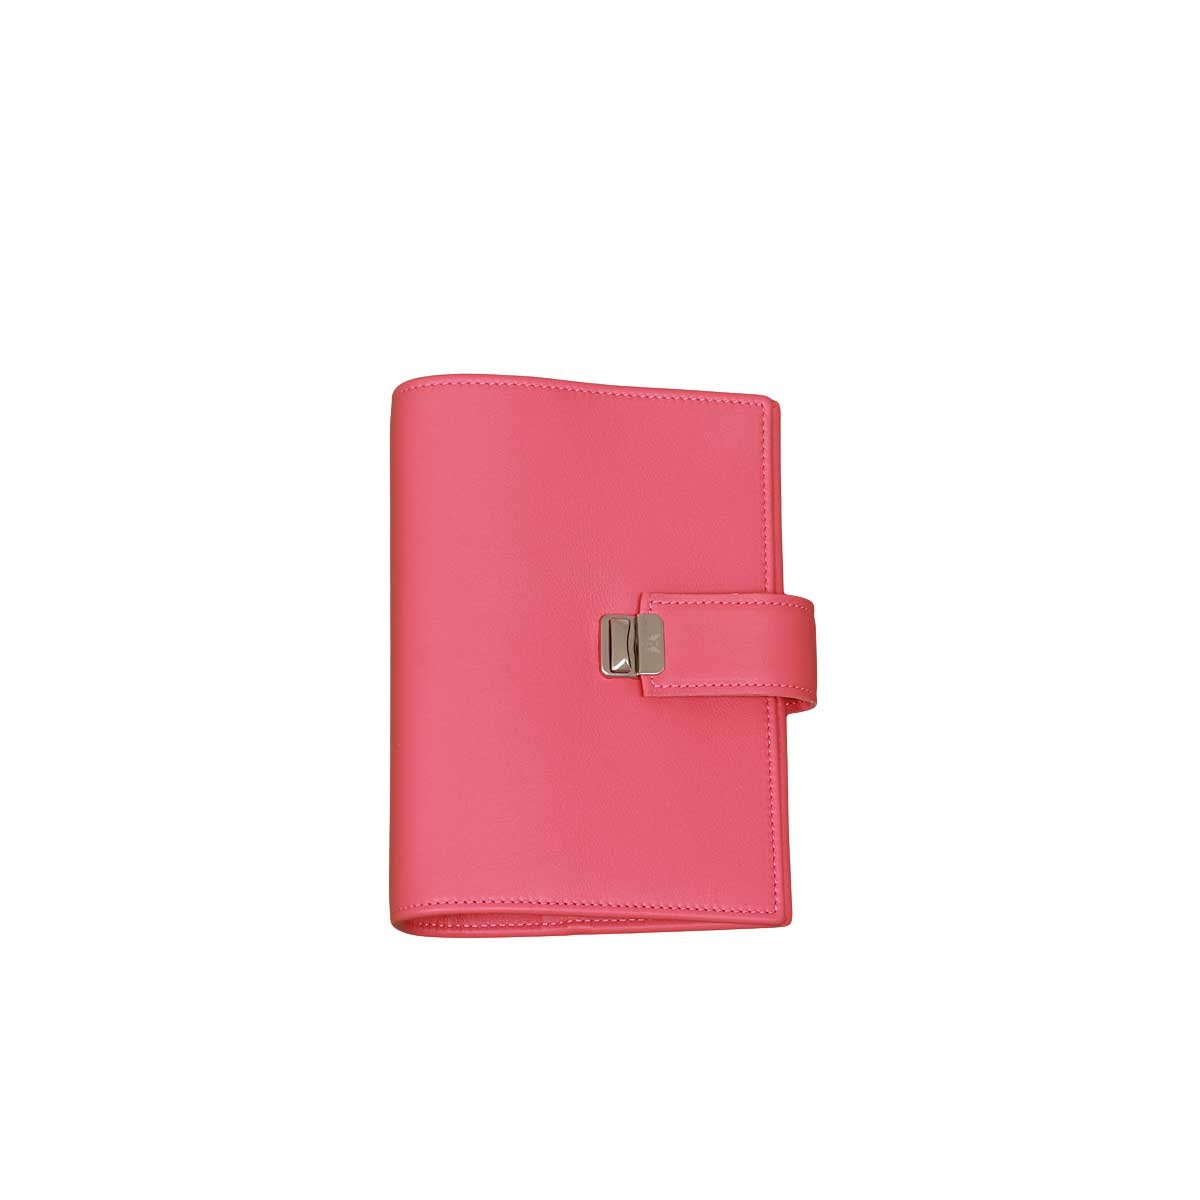 Peony Leather Binder Personal Leather Planner Large Rings